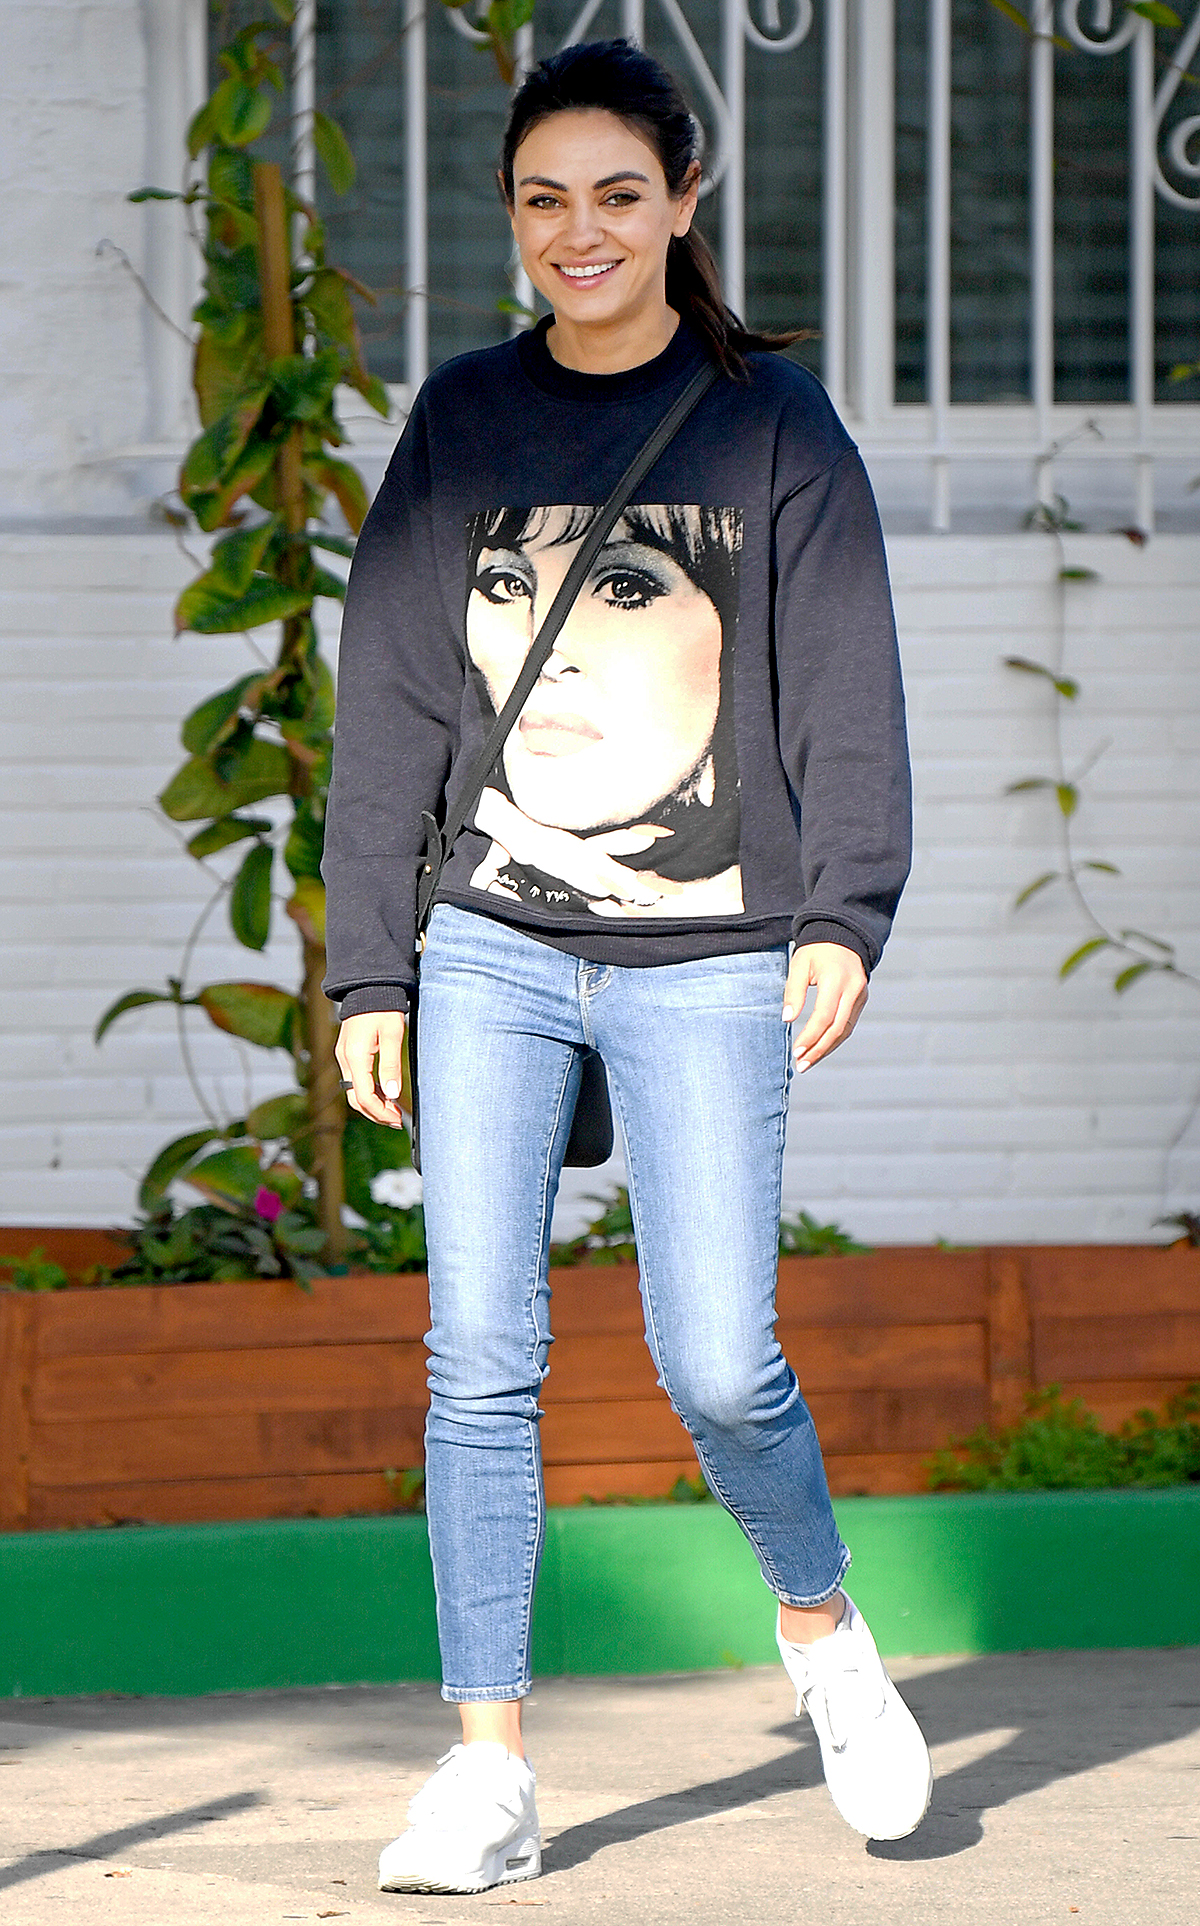 ila Kunis is all smiles as she steps out in Los Angeles.